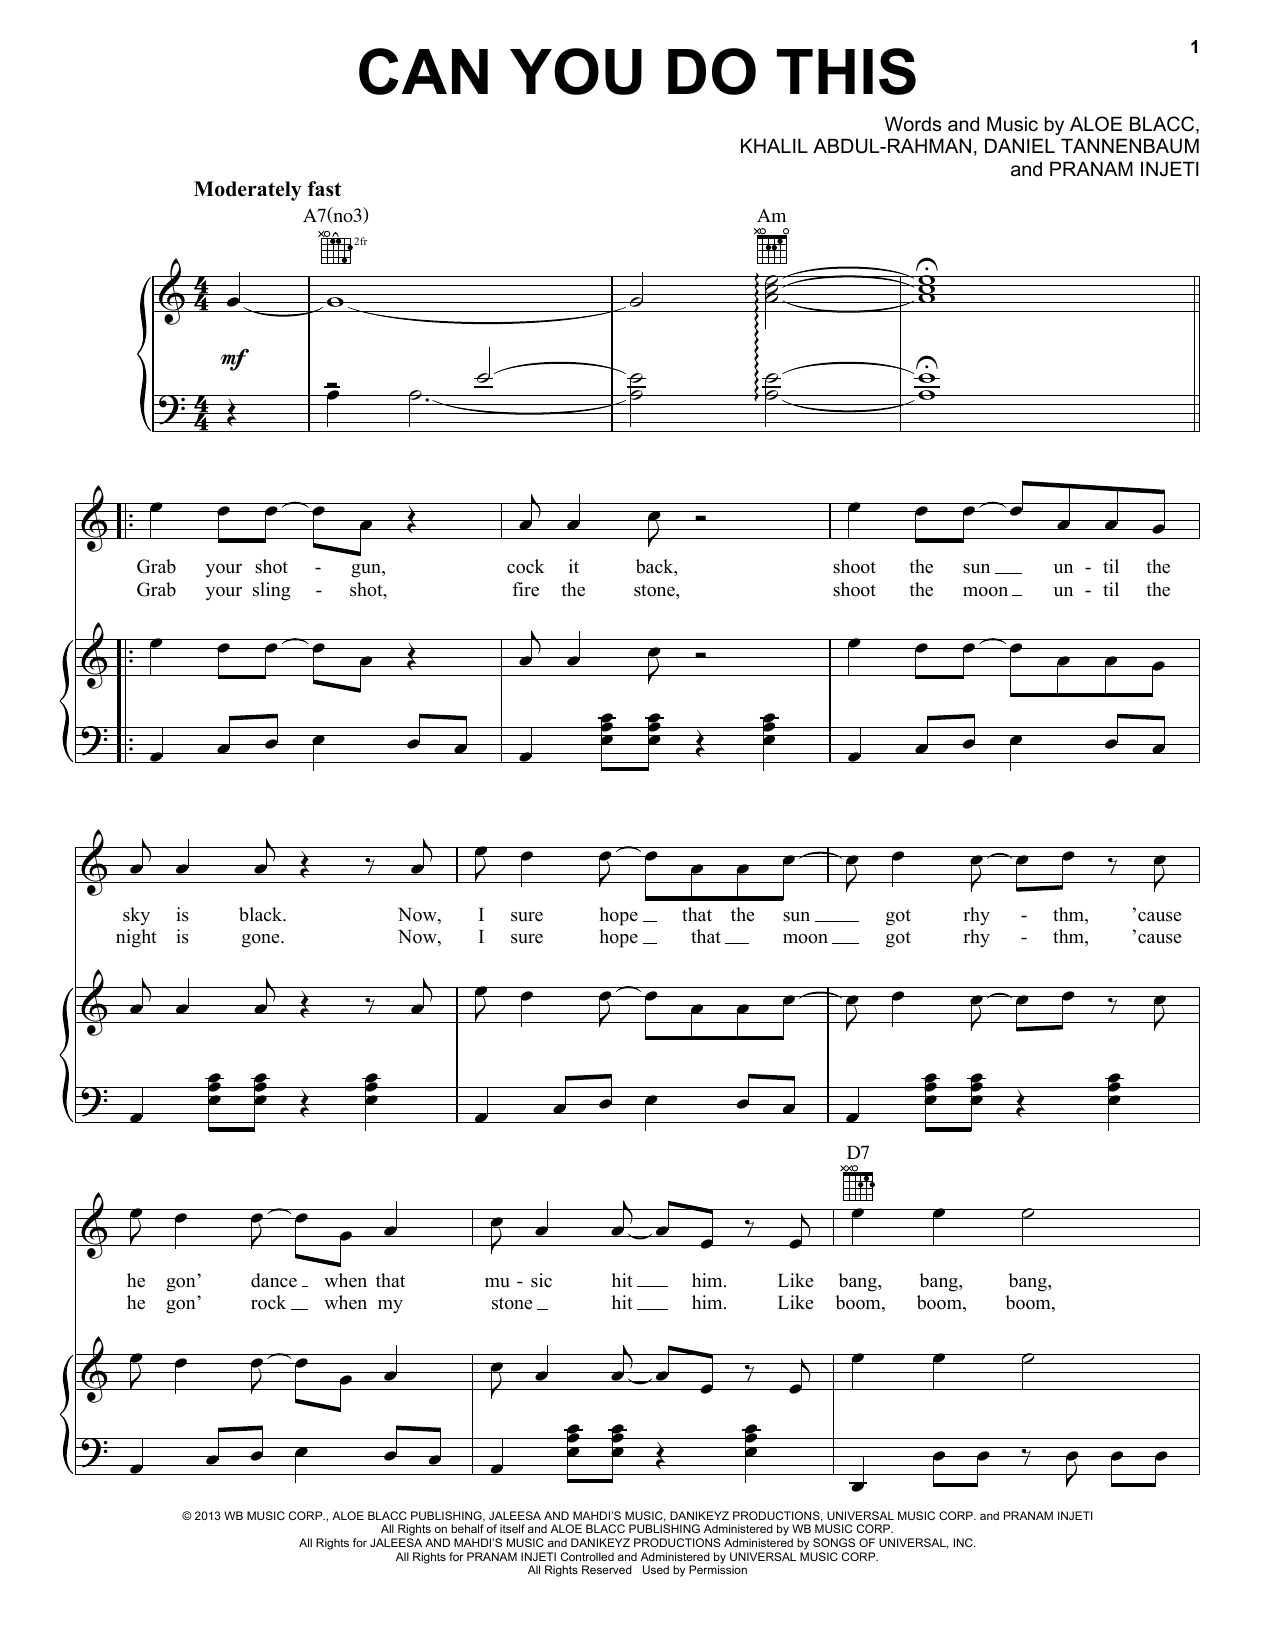 Aloe Blacc Can You Do This sheet music notes and chords. Download Printable PDF.